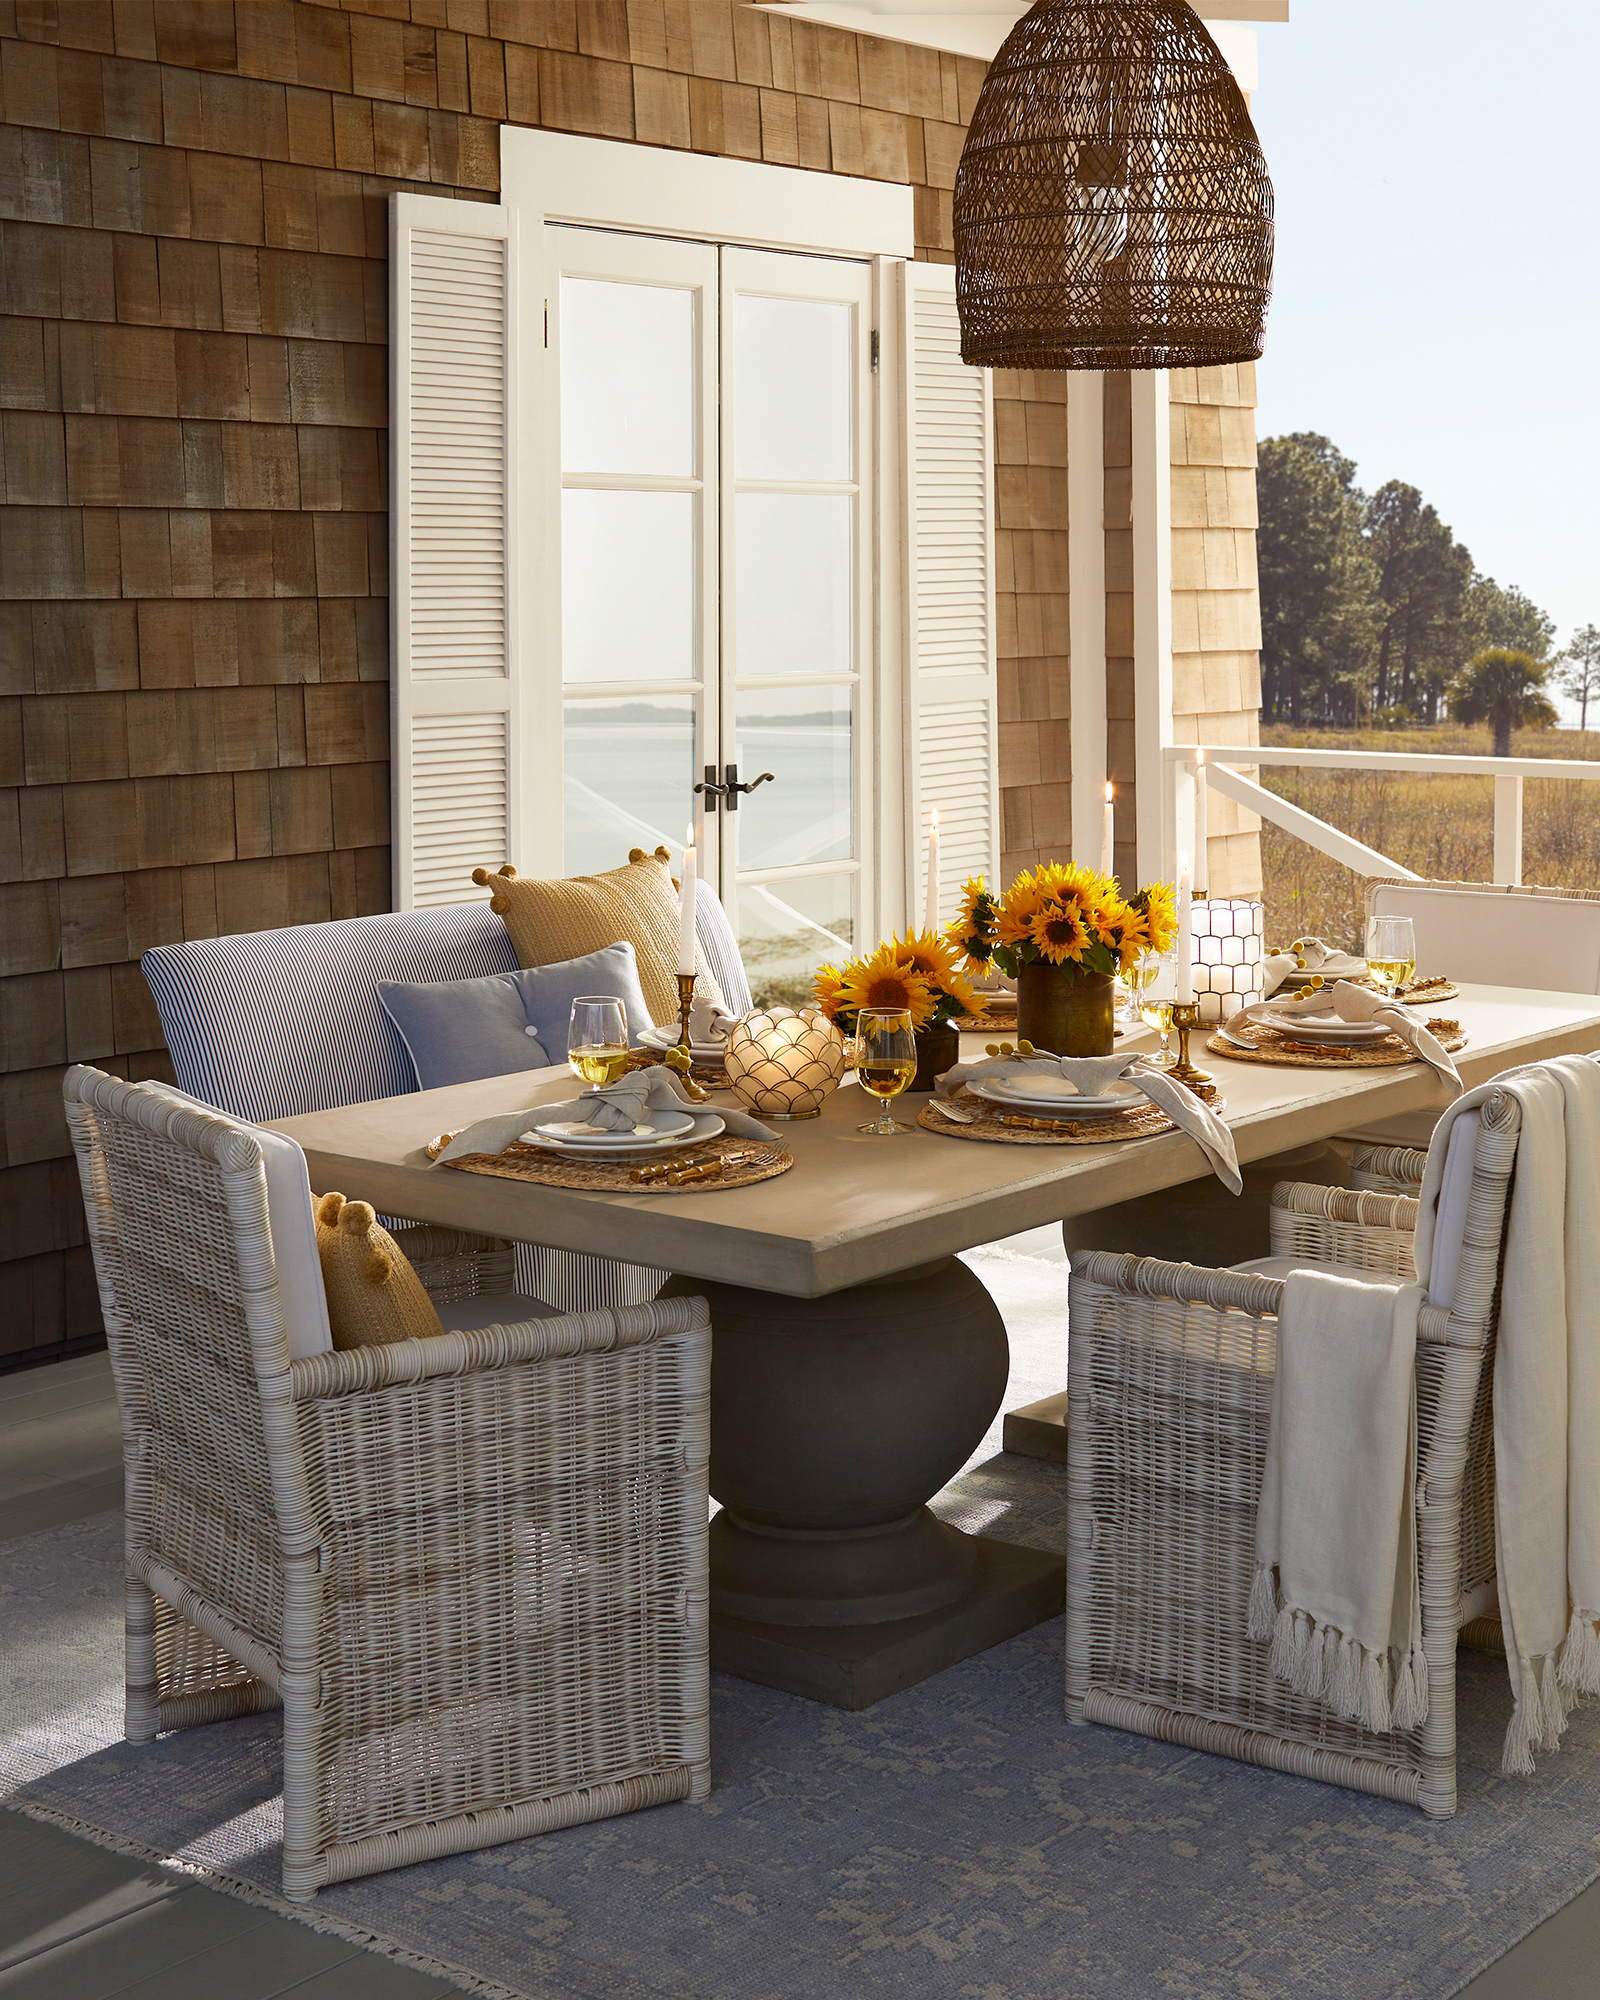 Sundial Outdoor Dining Bench - Slipcovered,